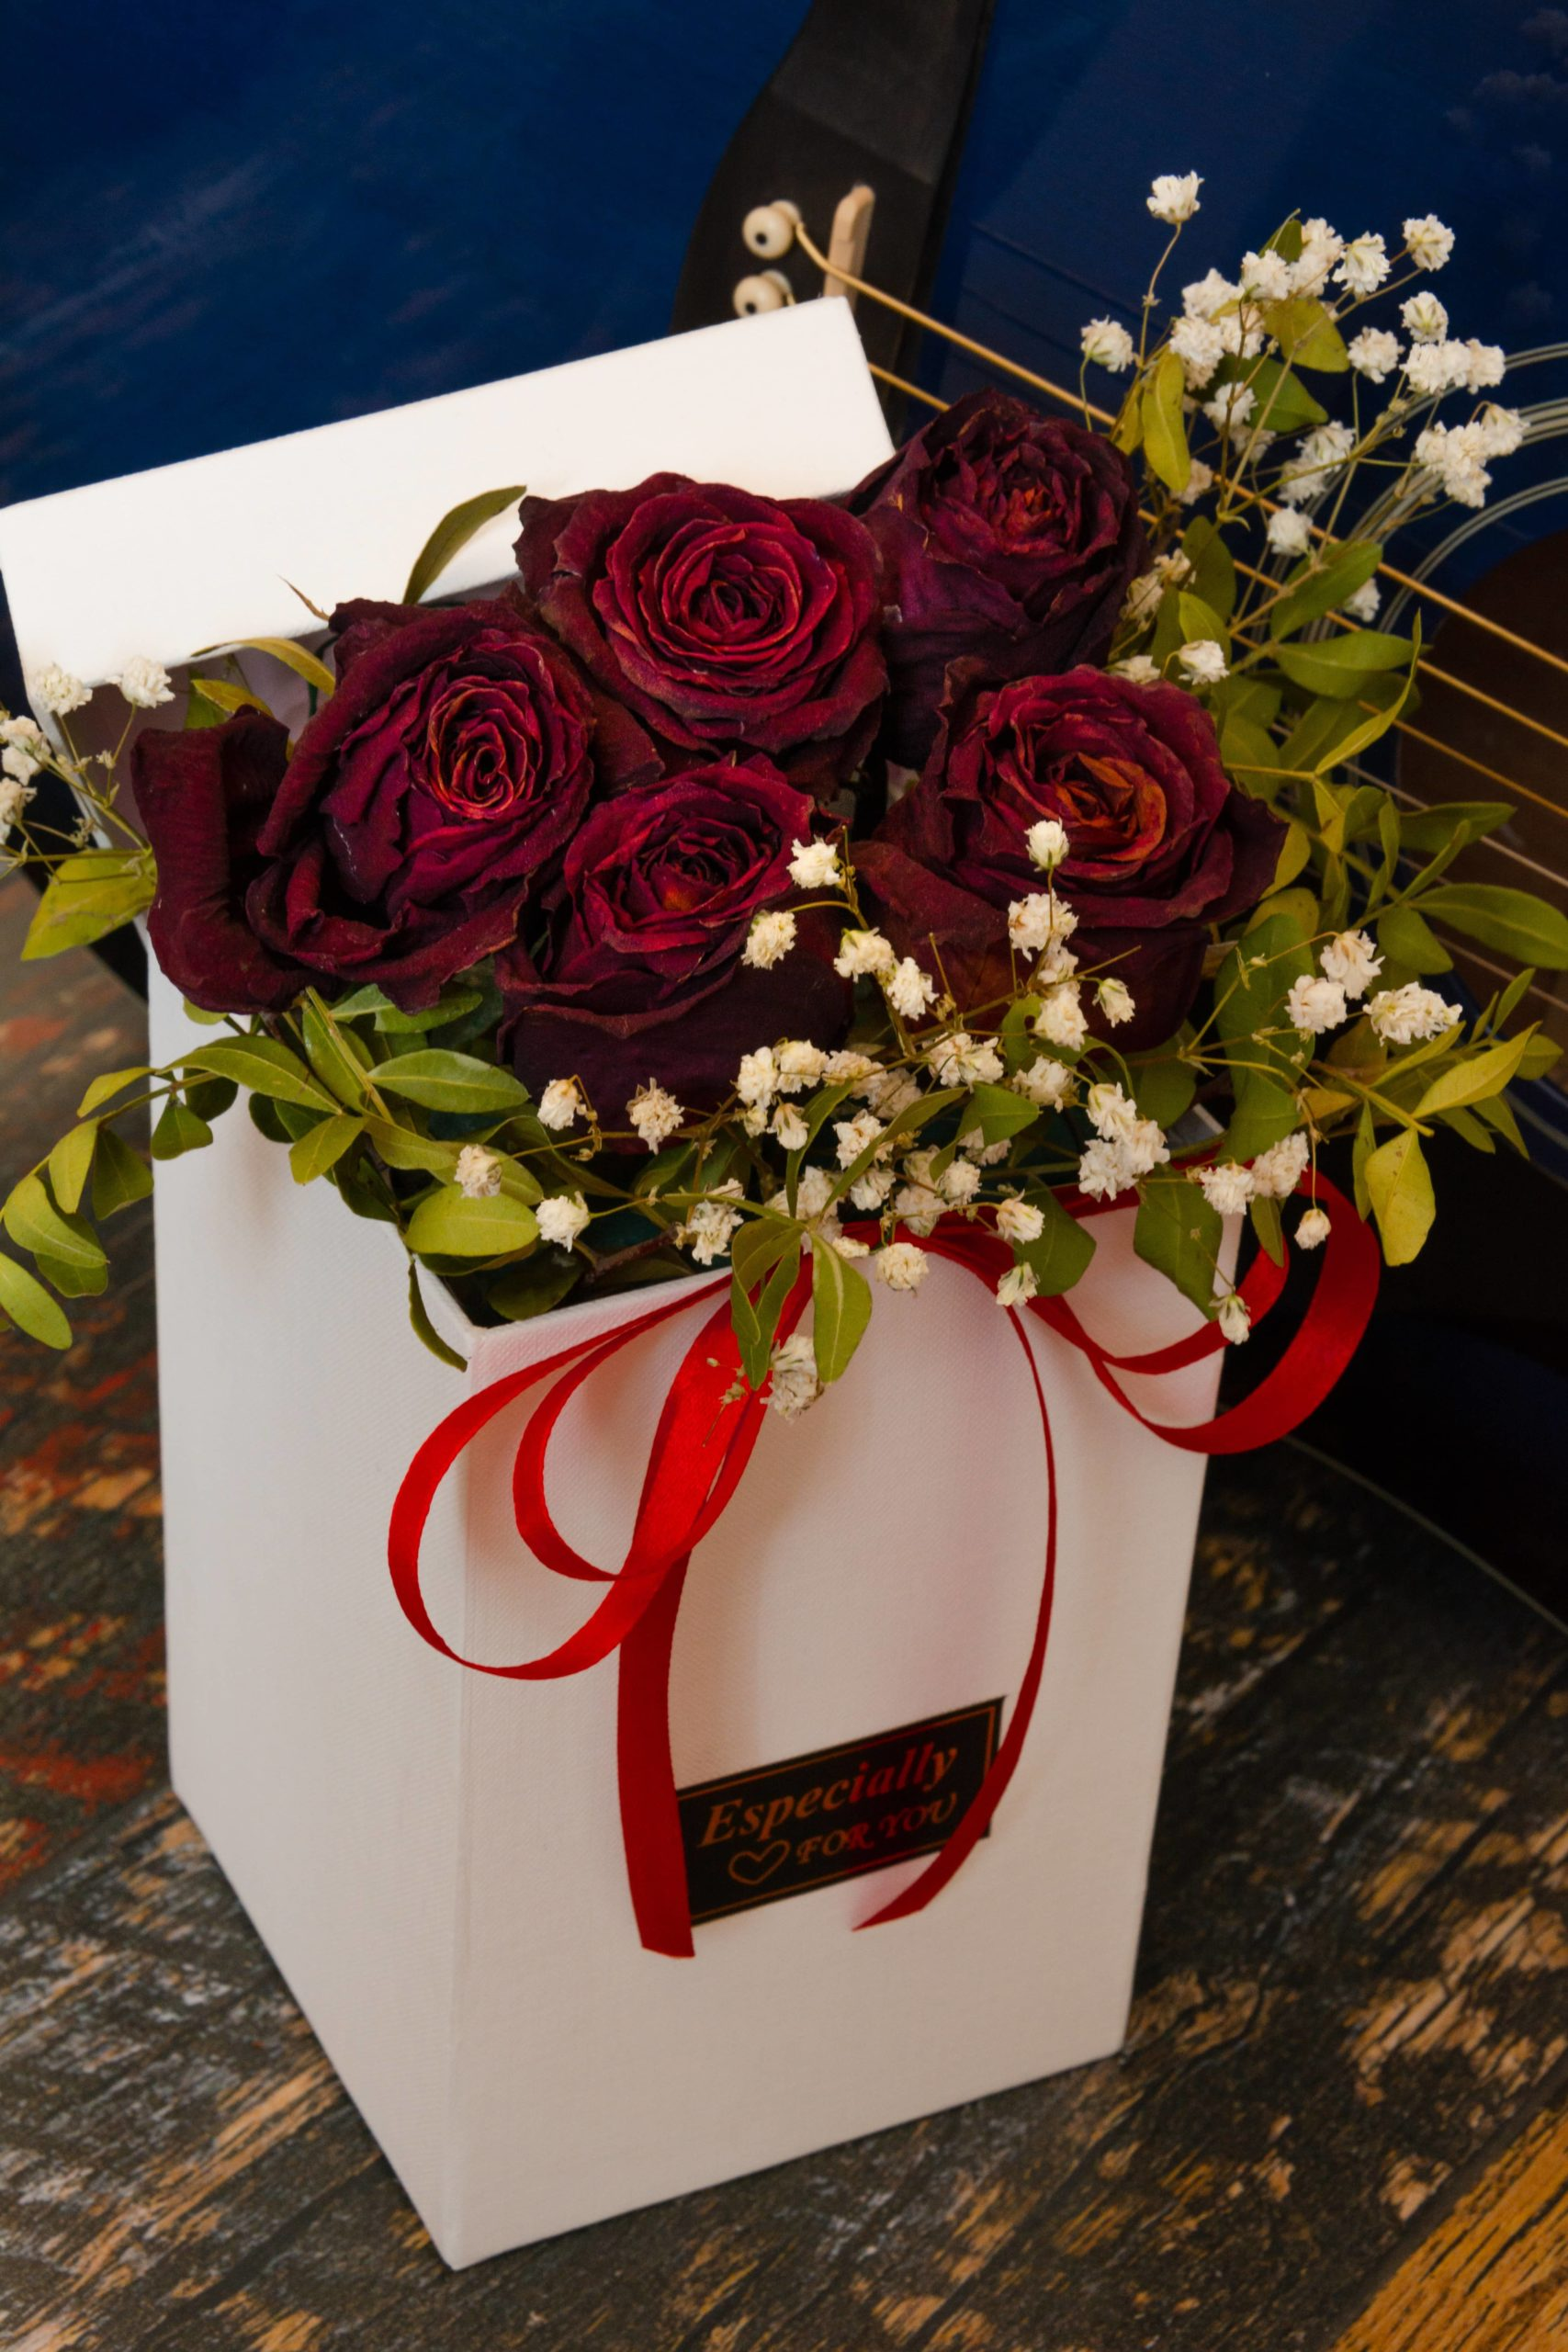 Rose Day special gift